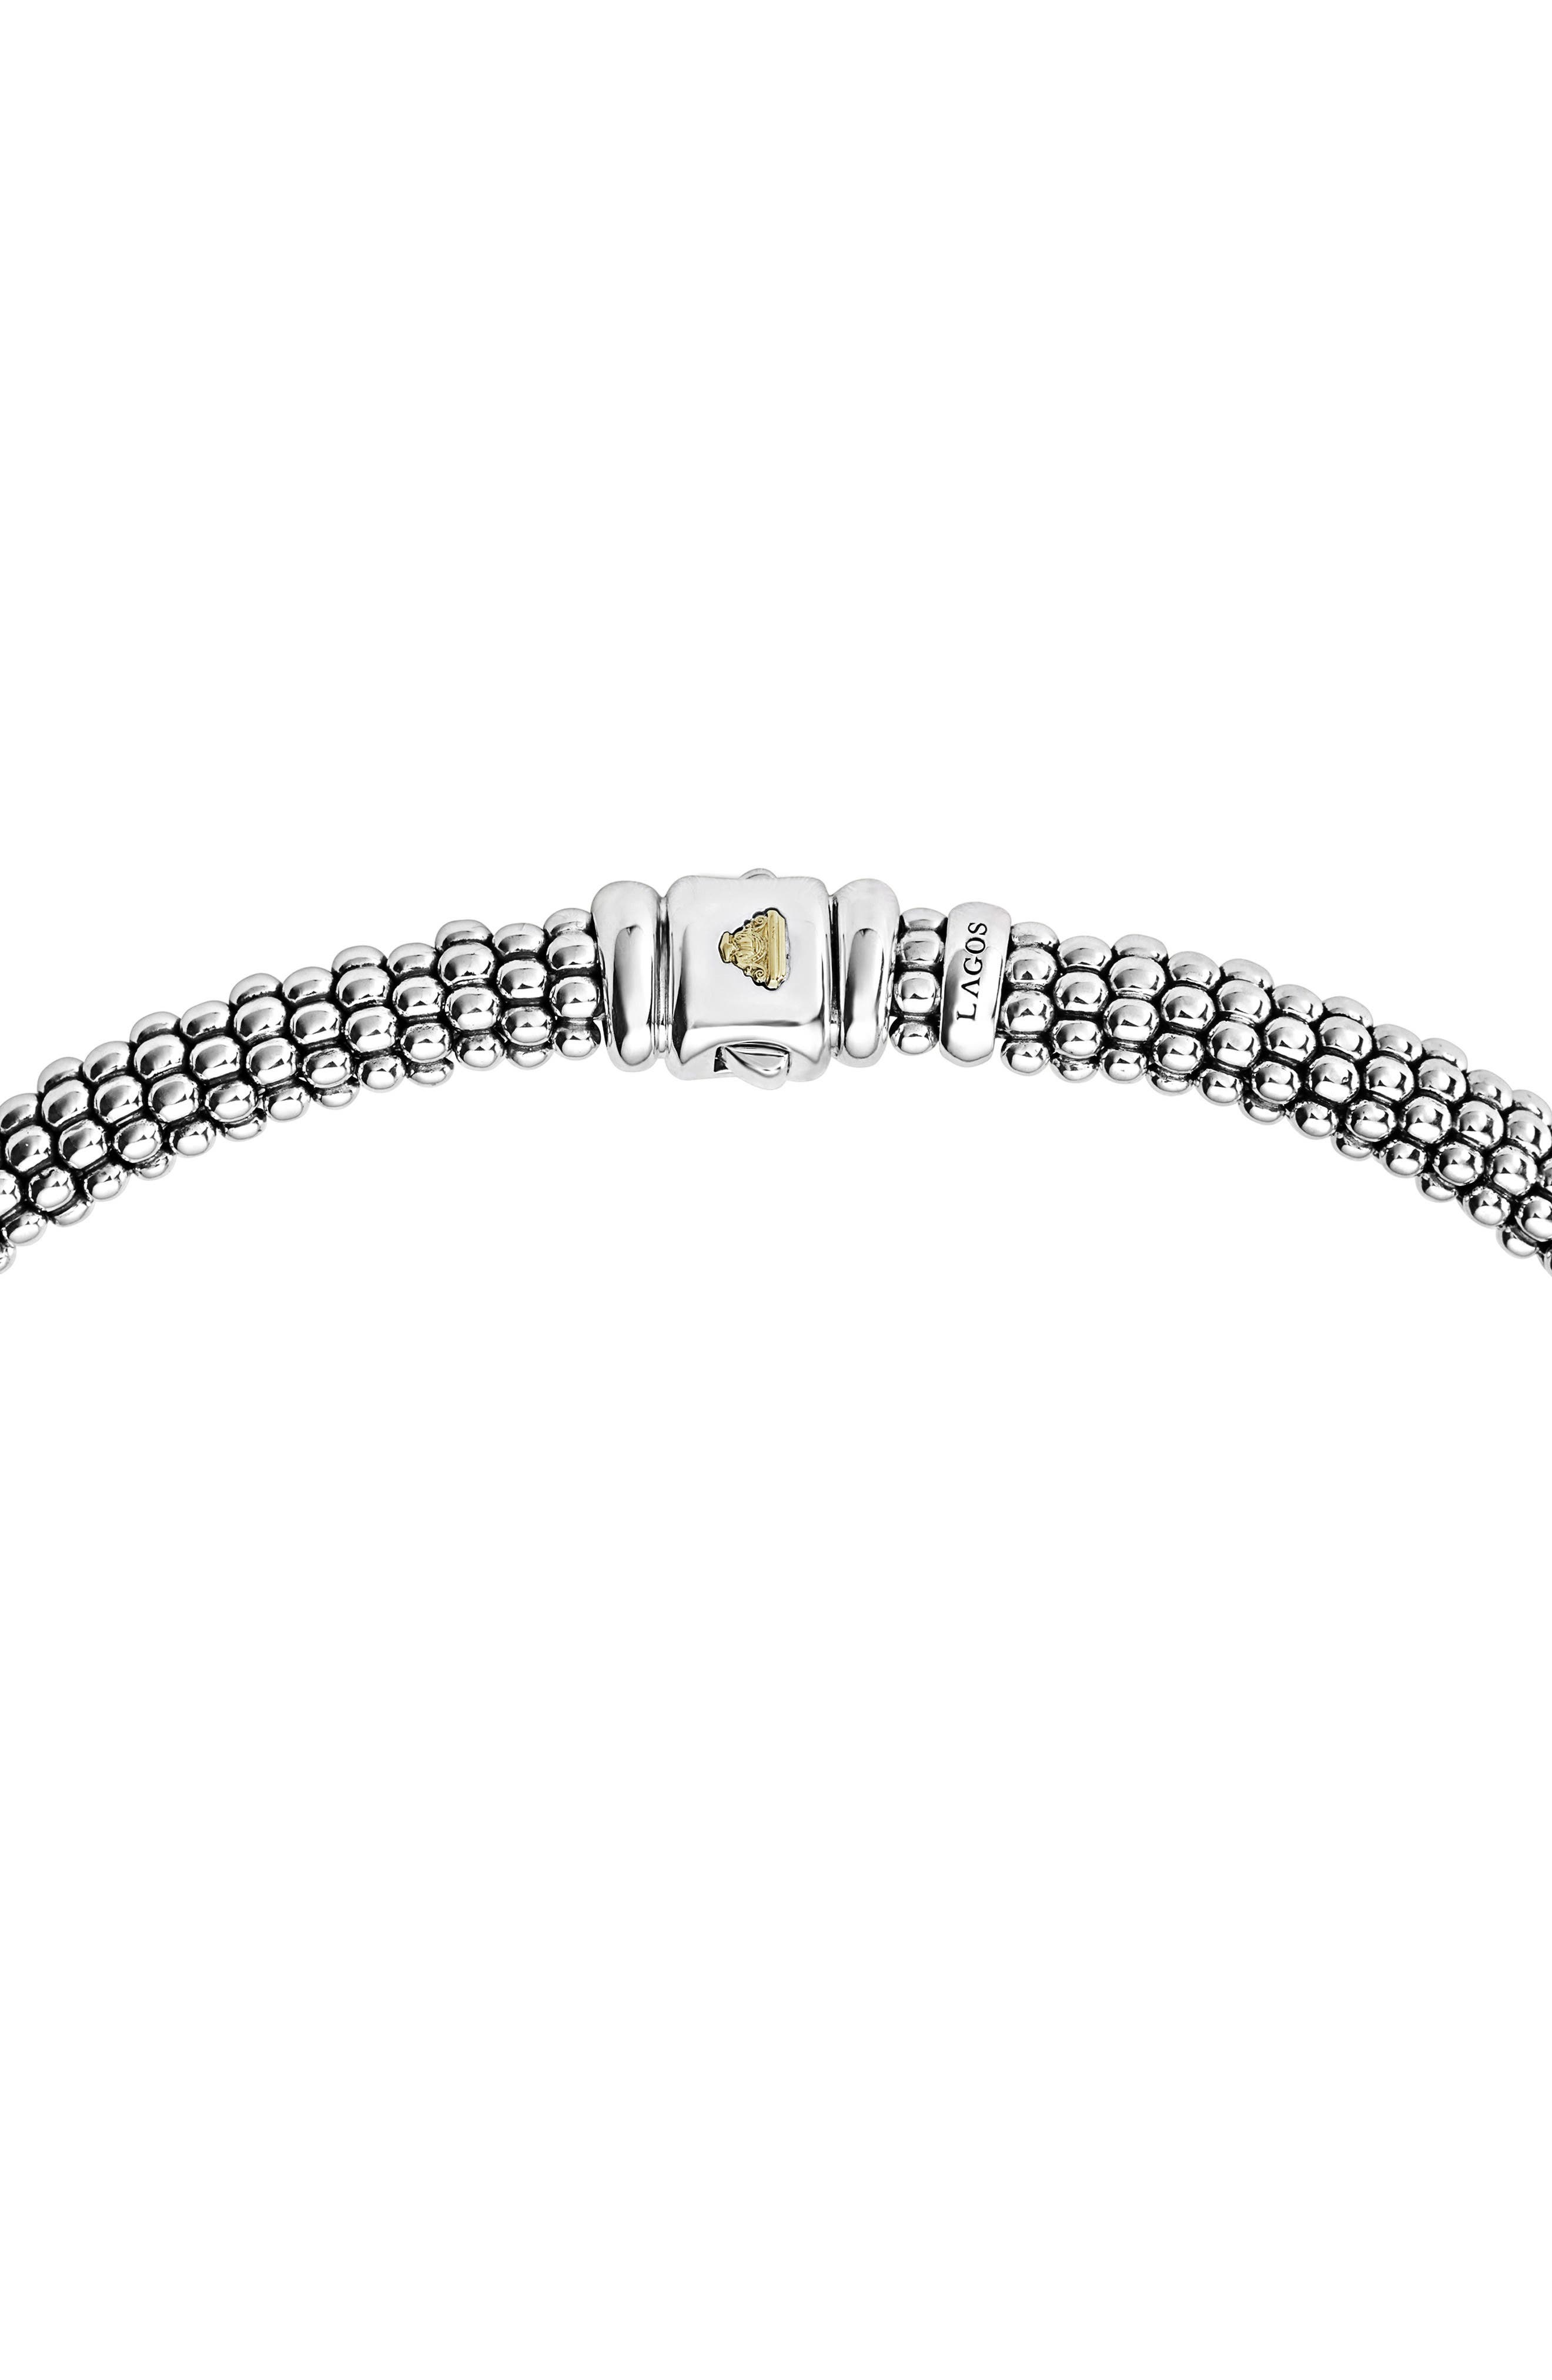 Diamond Lux Triple Station Collar Necklace,                             Alternate thumbnail 3, color,                             SILVER/ DIAMOND